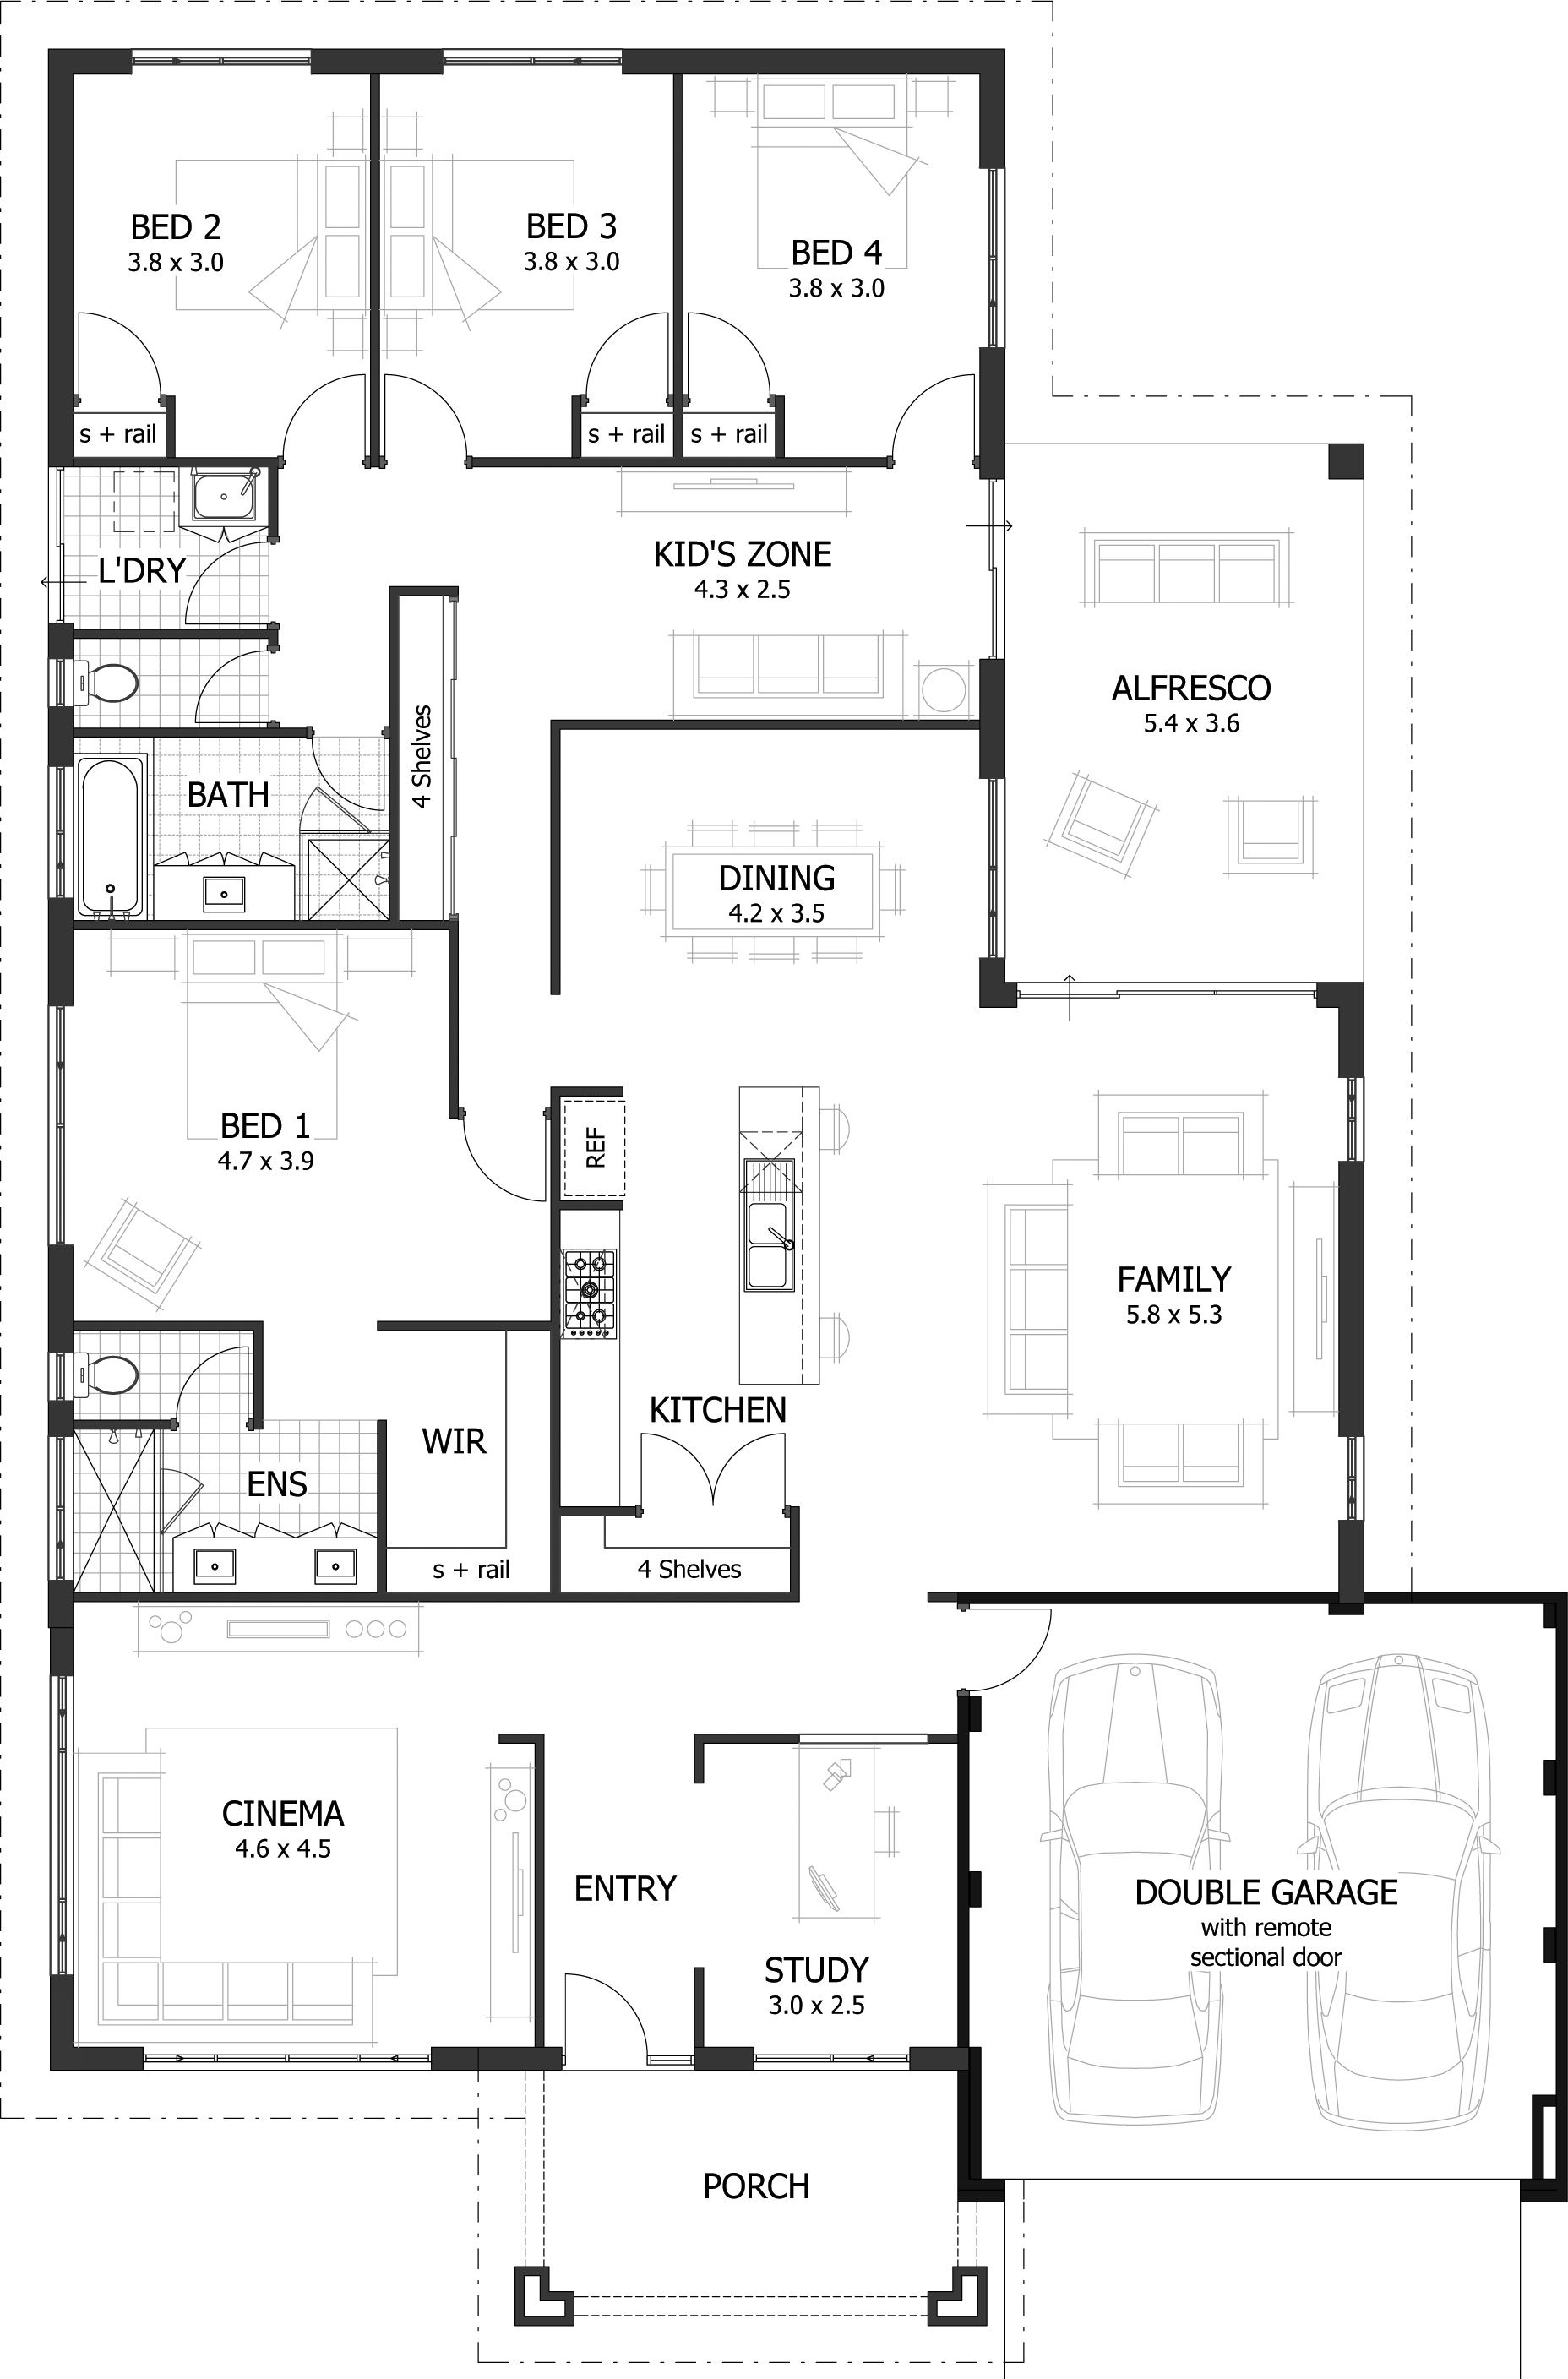 Large family homes celebration homes plans de maisons - Single story 4 bedroom modern house plans ...